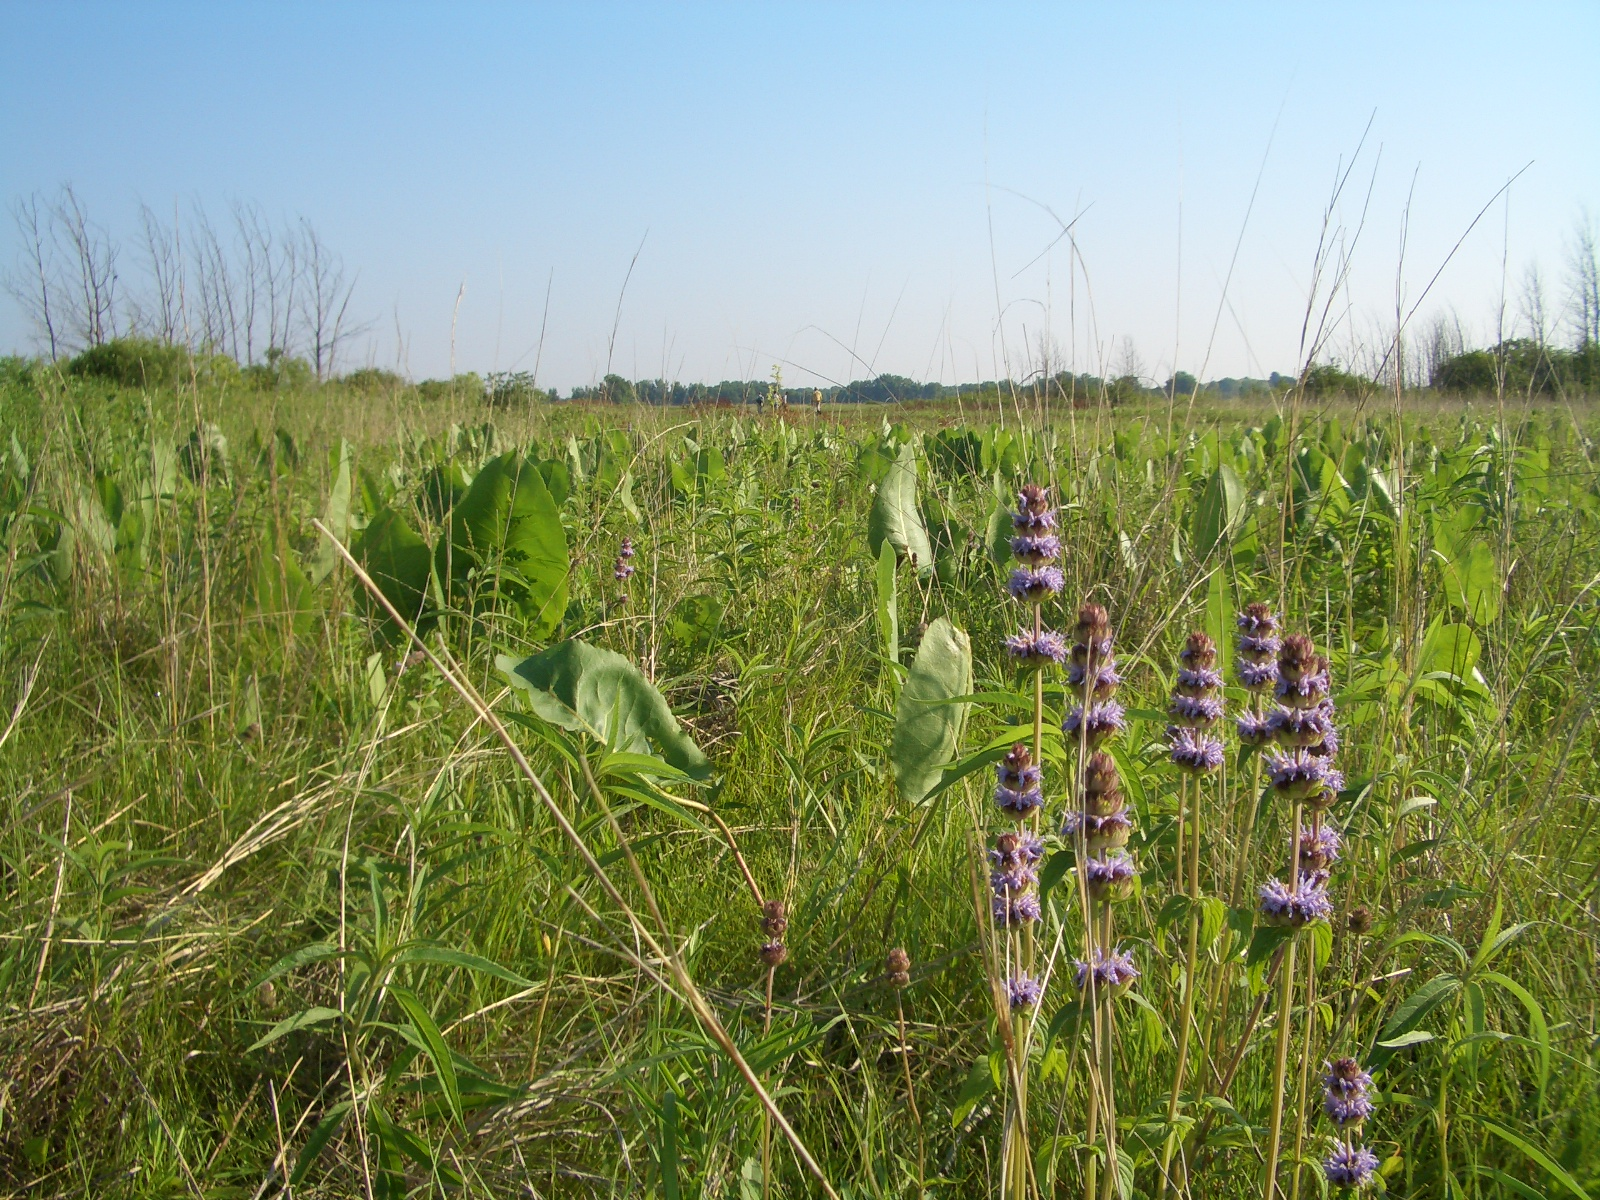 The beautifully restored prairies at MAS Faville Grove Sanctuary are a great example of nesting habitat for grassland birds. Photo by Brenna Marsicek